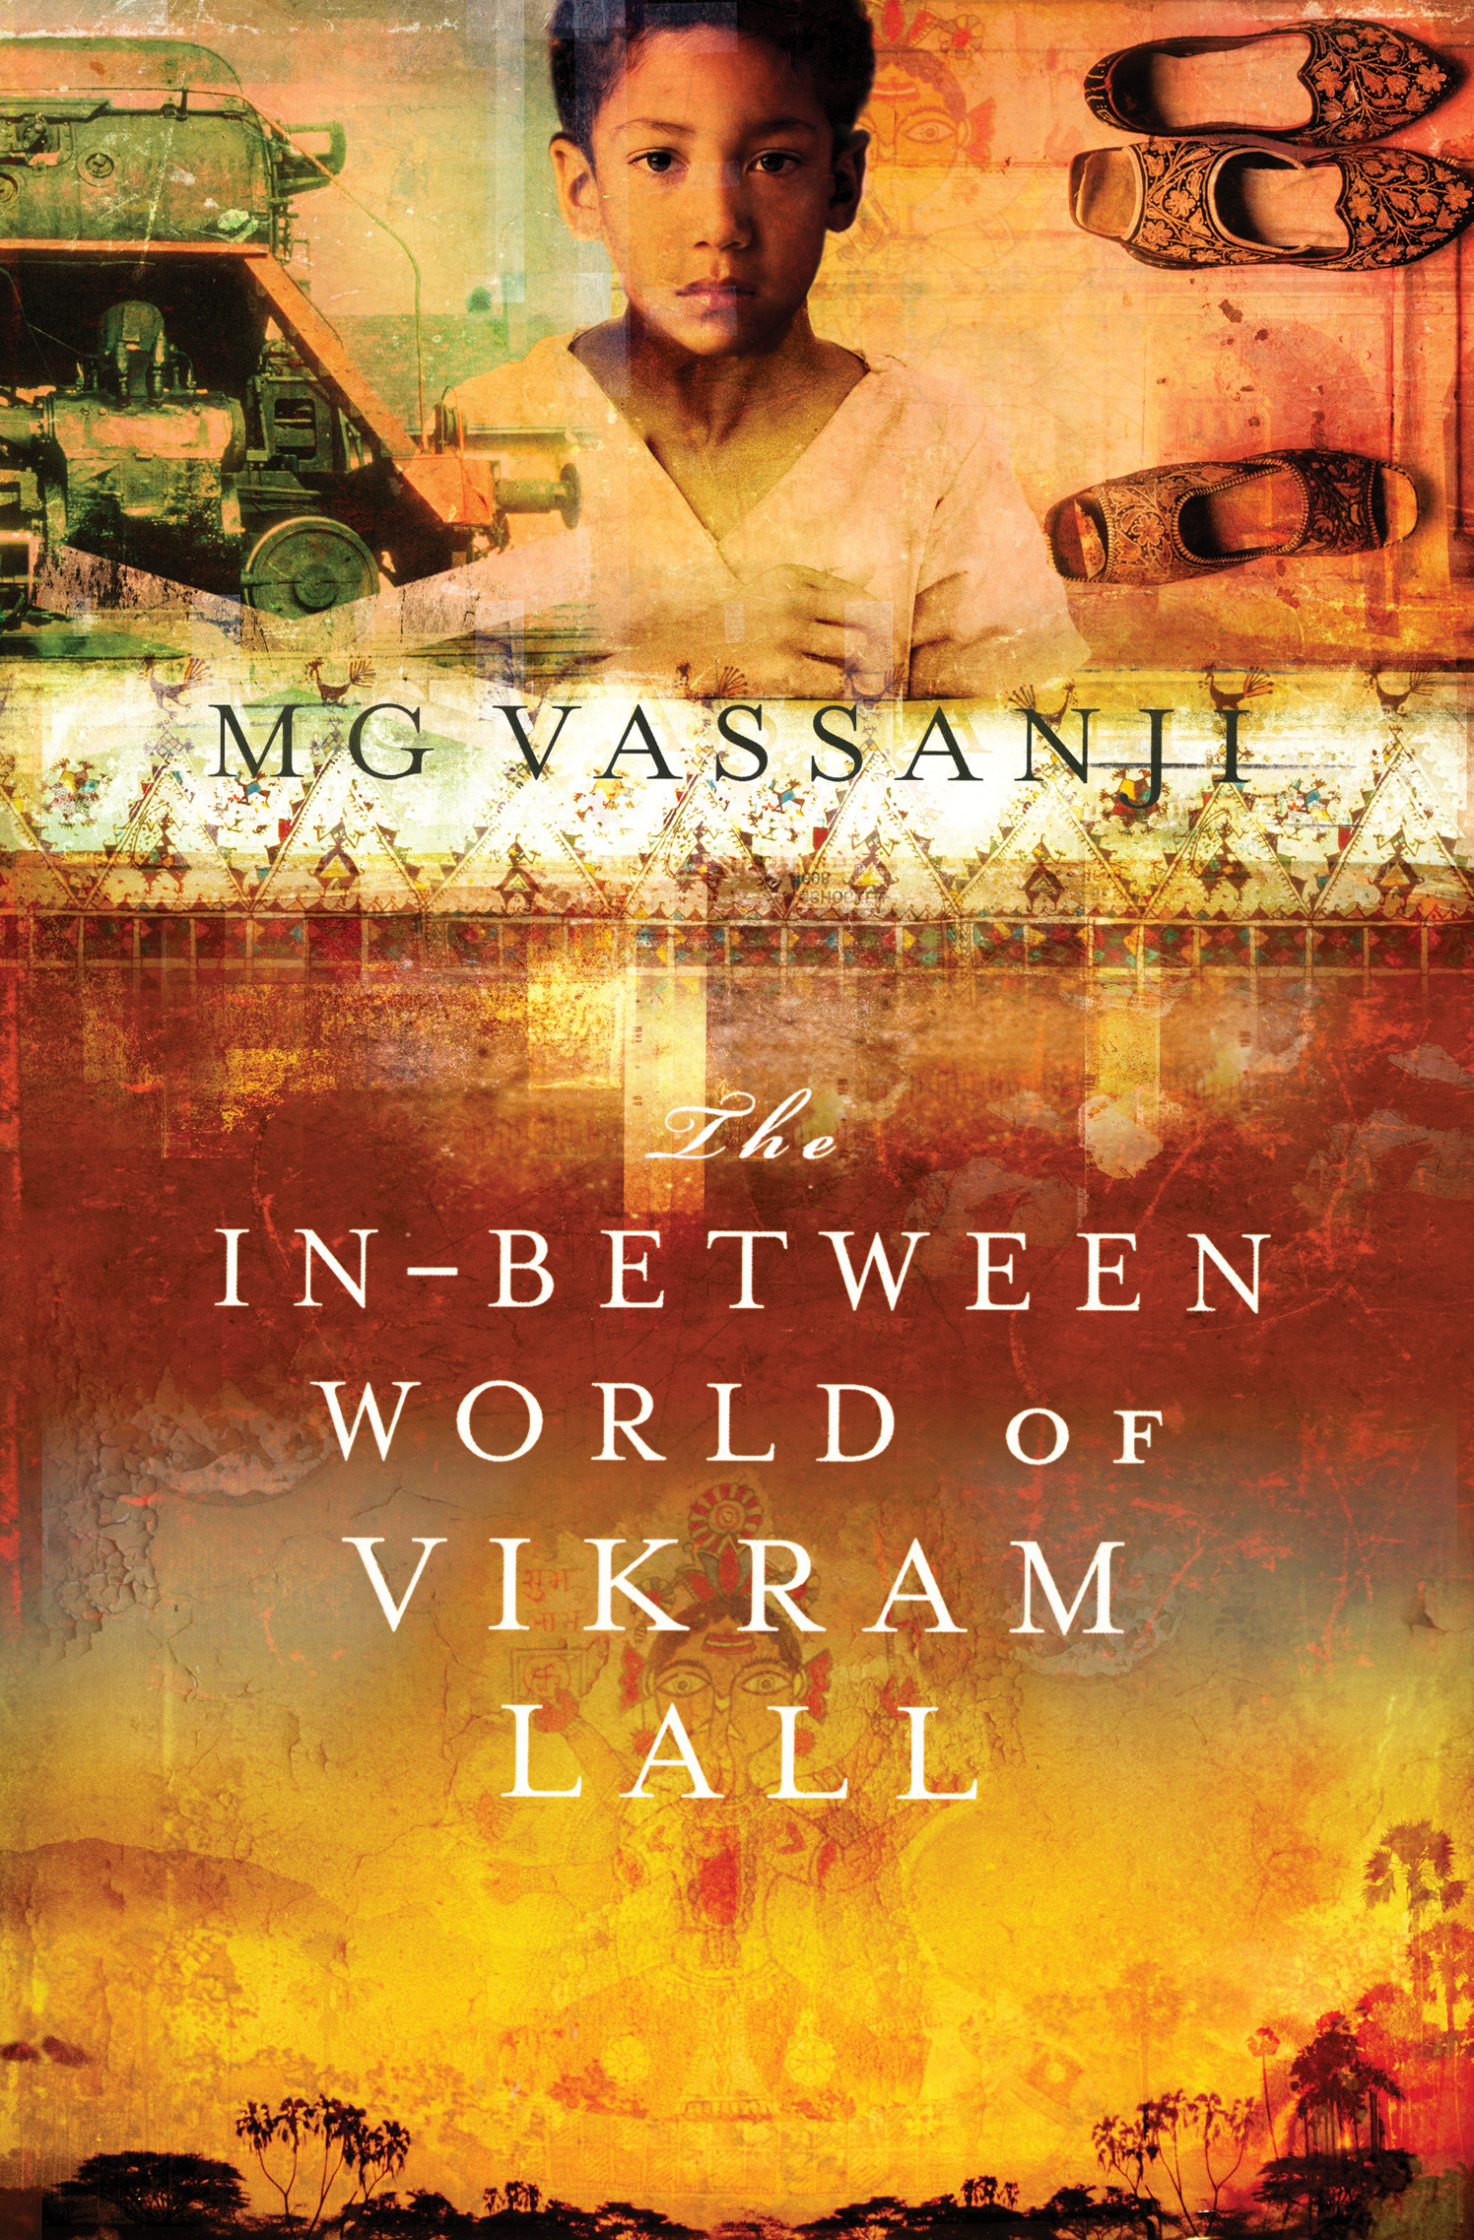 the in-between world of vikram lall essay The in-between world of vikram lall is a novel by m g vassanji, published in 2003 by doubleday canada the novel won the scotiabank giller prize that year and narrates a story of vikram lall in the colonial and post-colonial kenya.